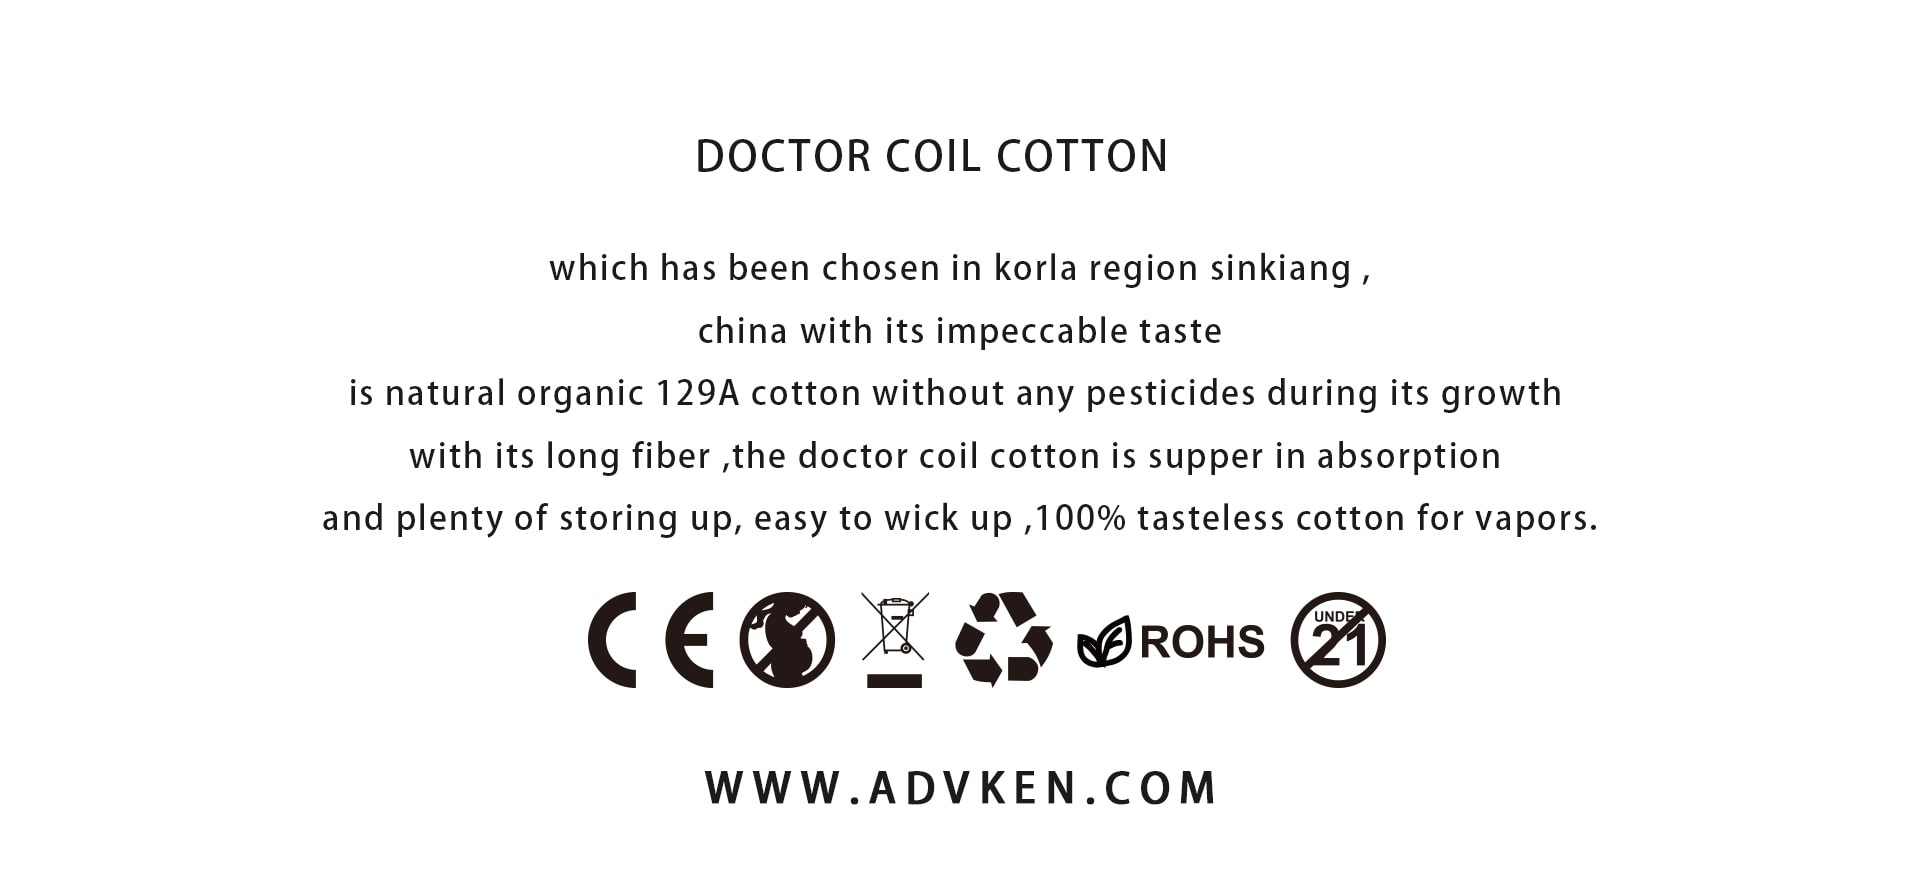 Advken 100% tasteless cotton